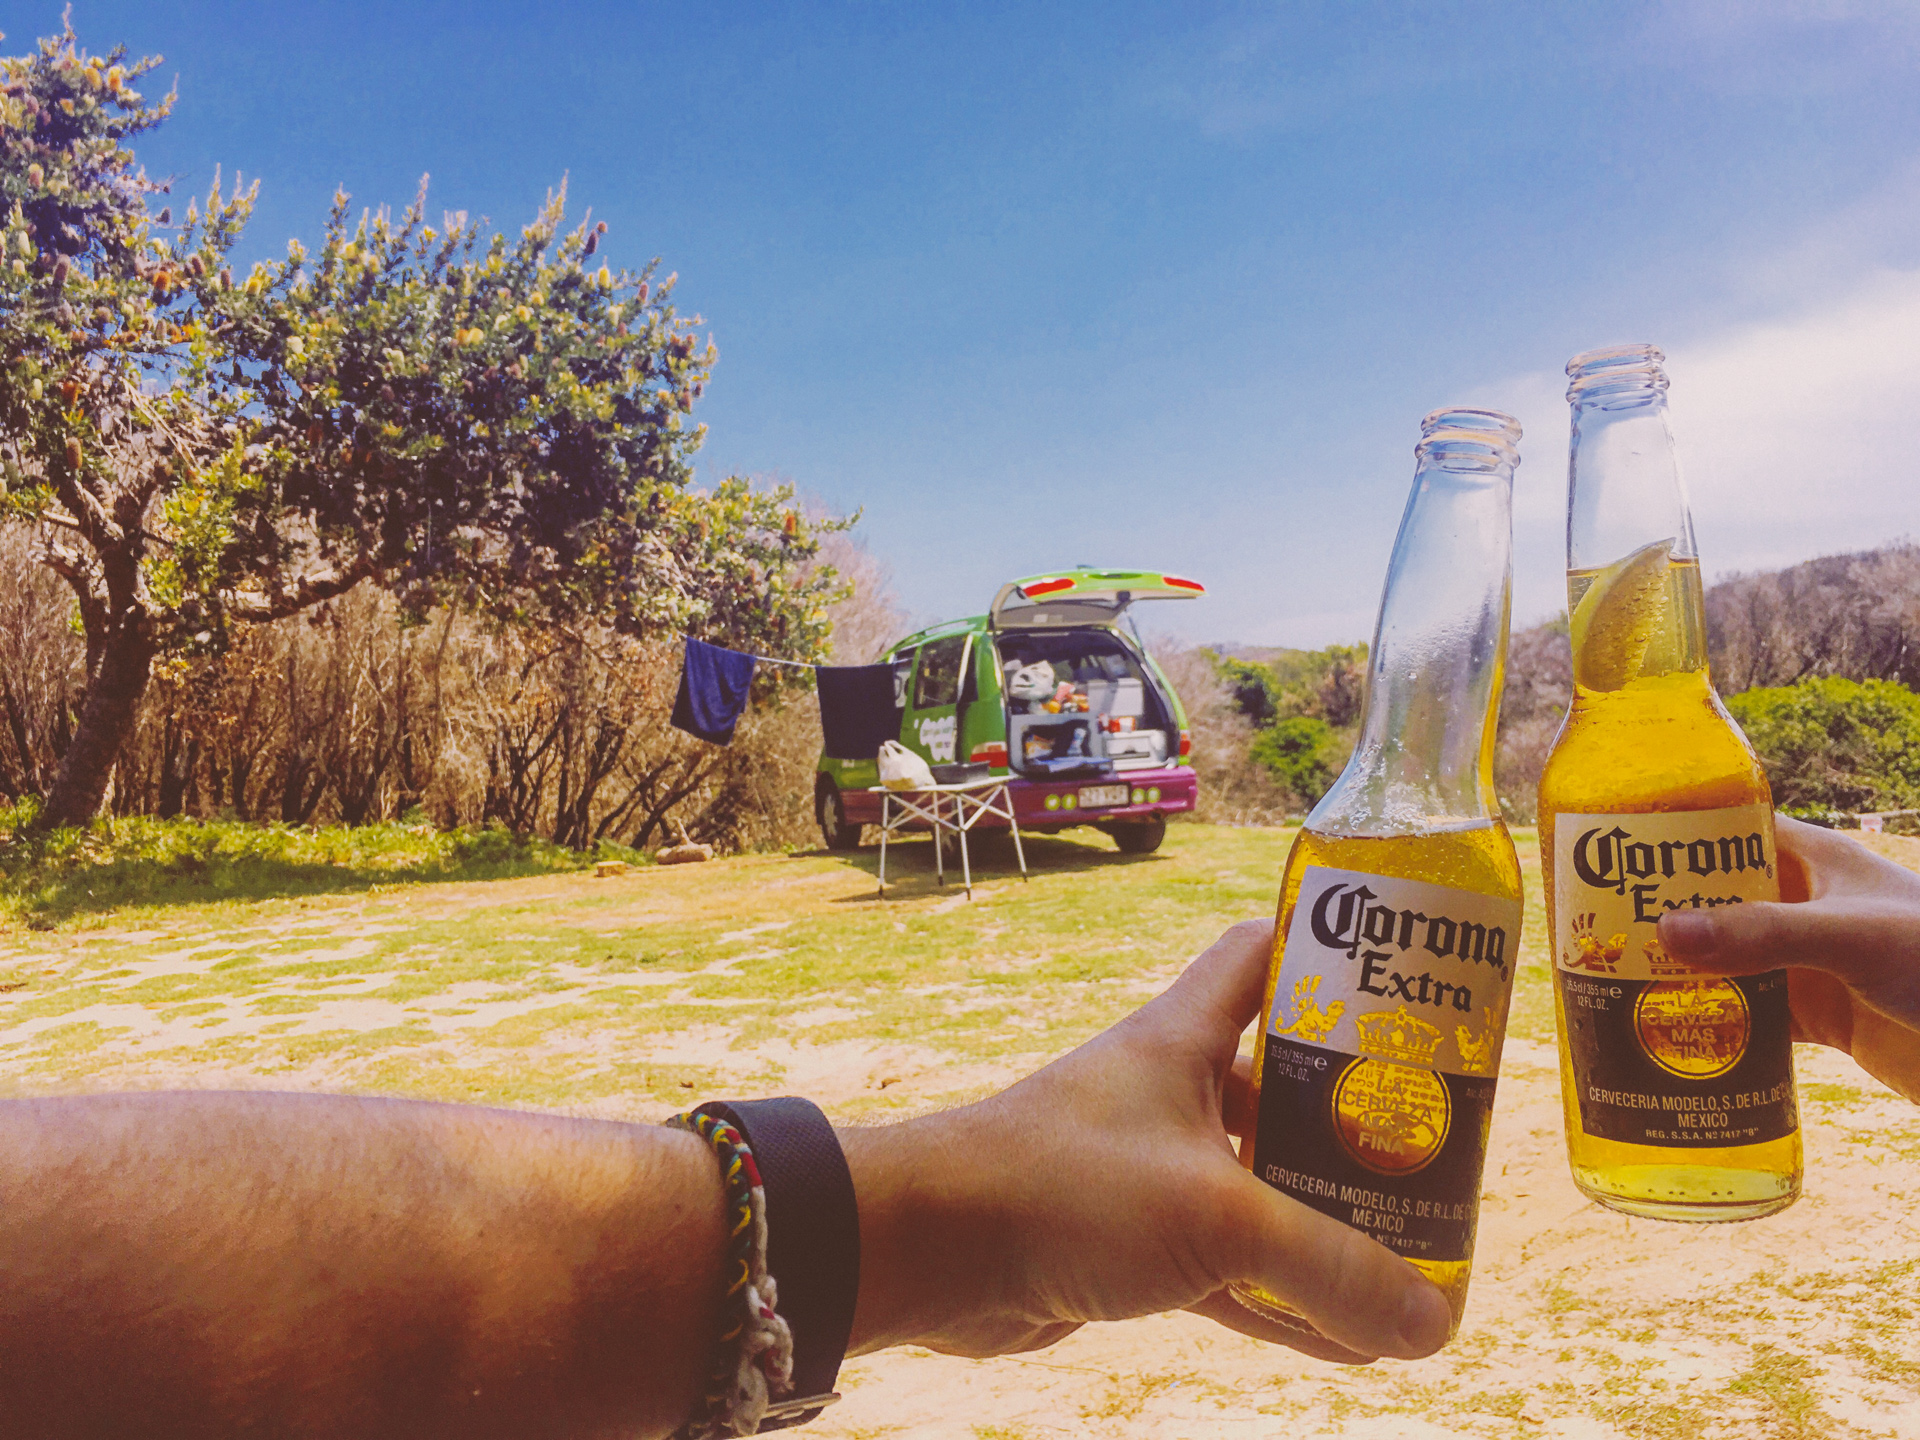 Drinking Corona with Jucy Campervan Australia